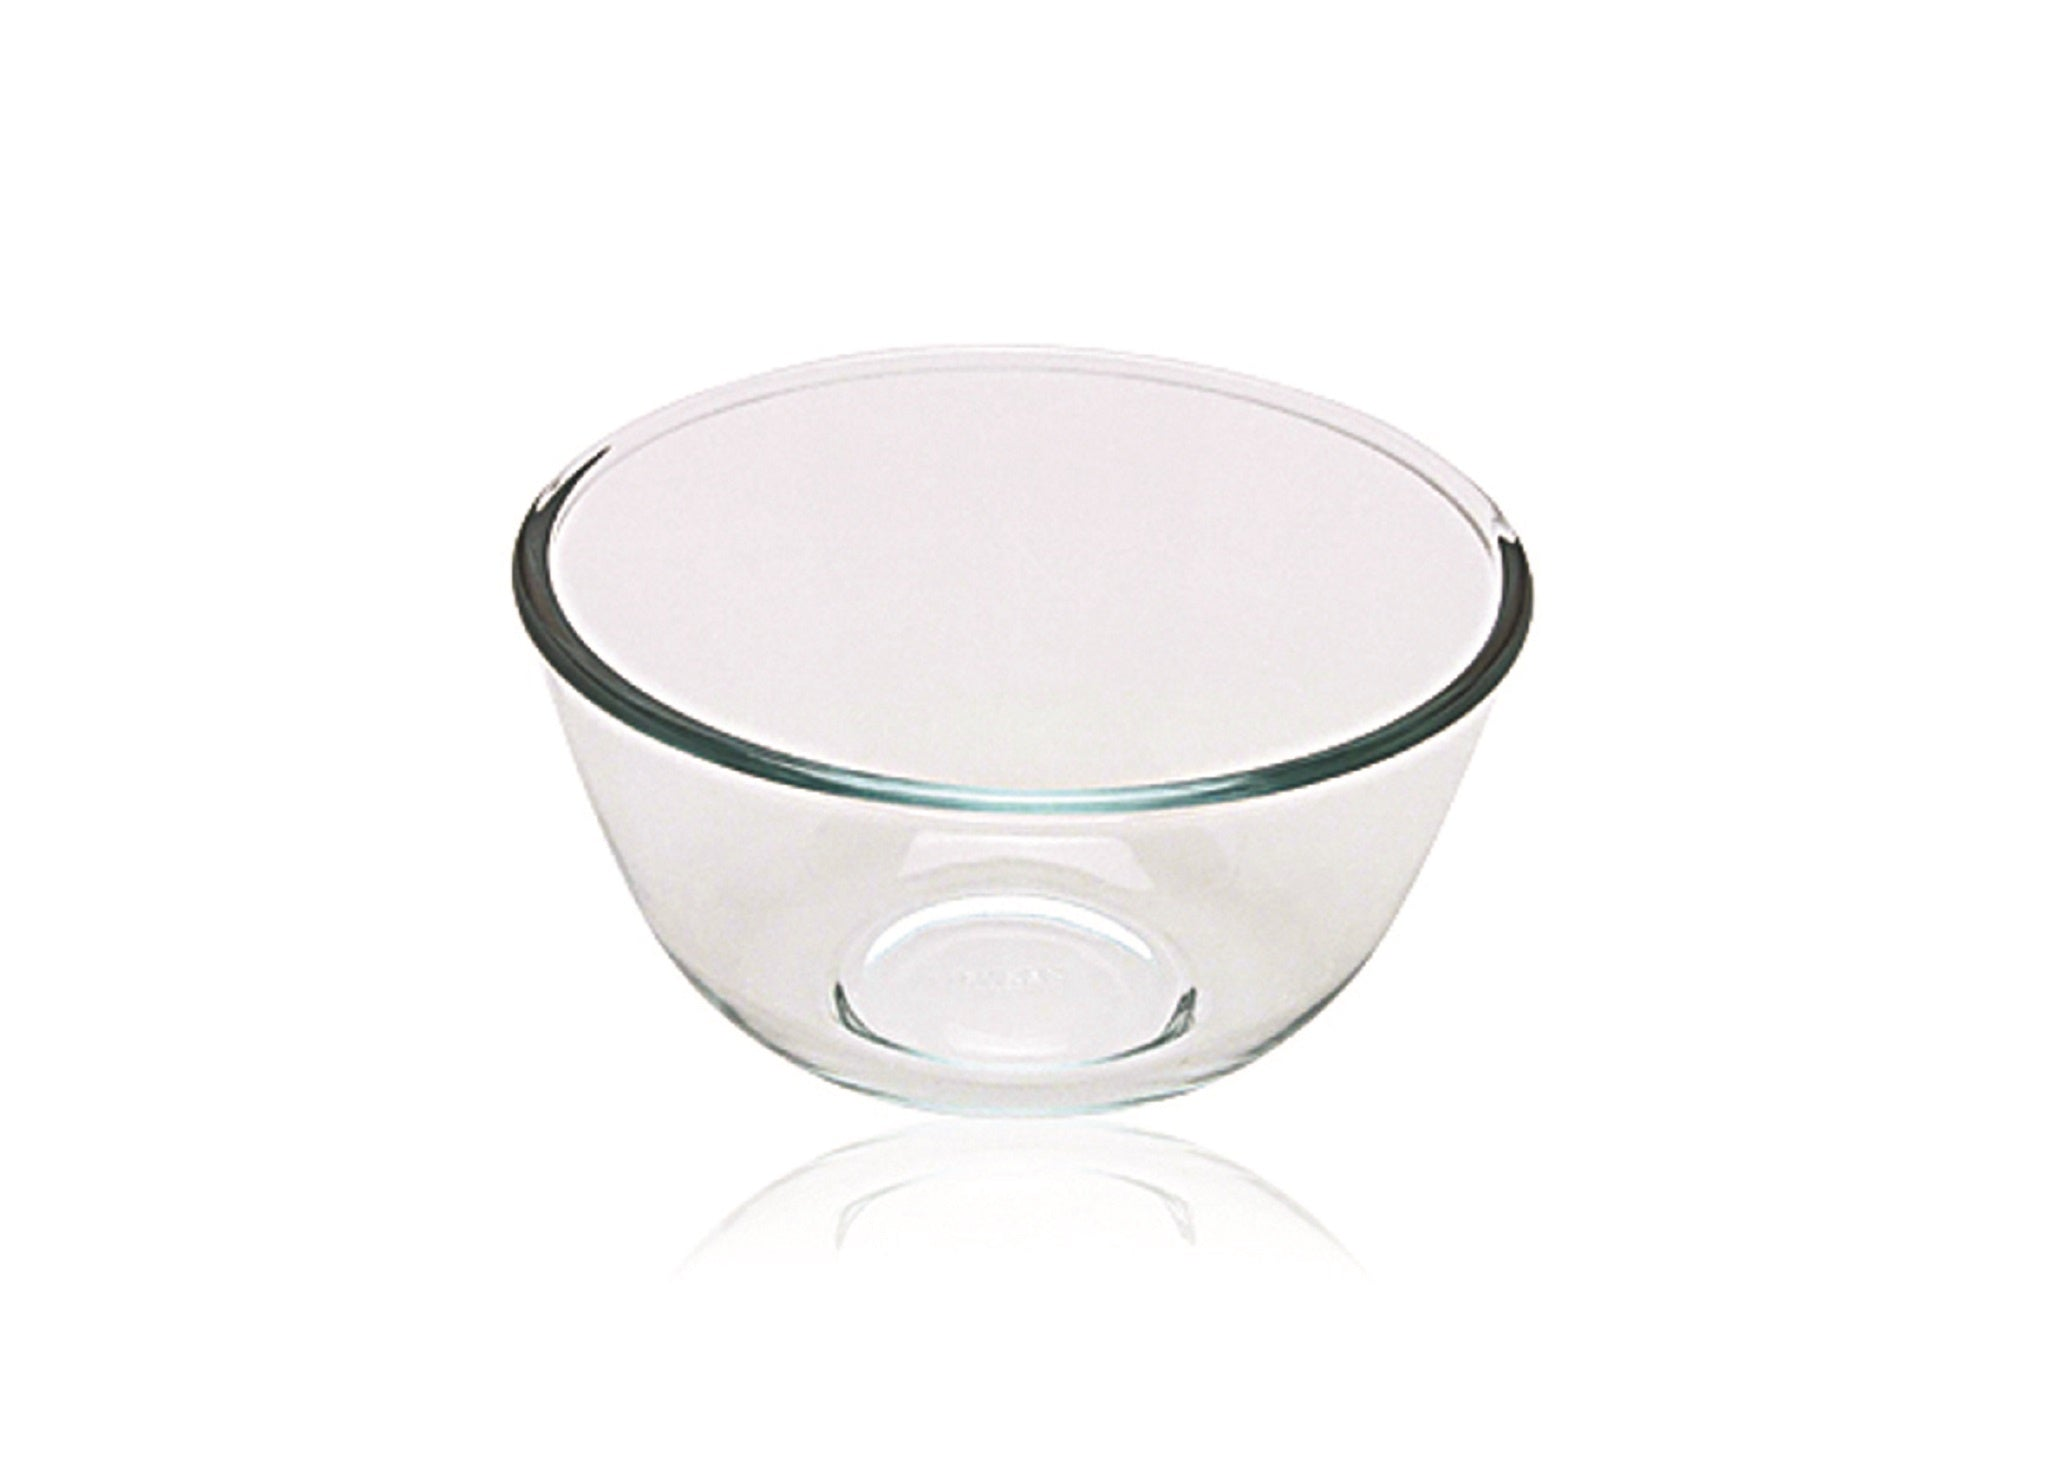 Pyrex Originals 2L Glass Mixing Bowl-1030237